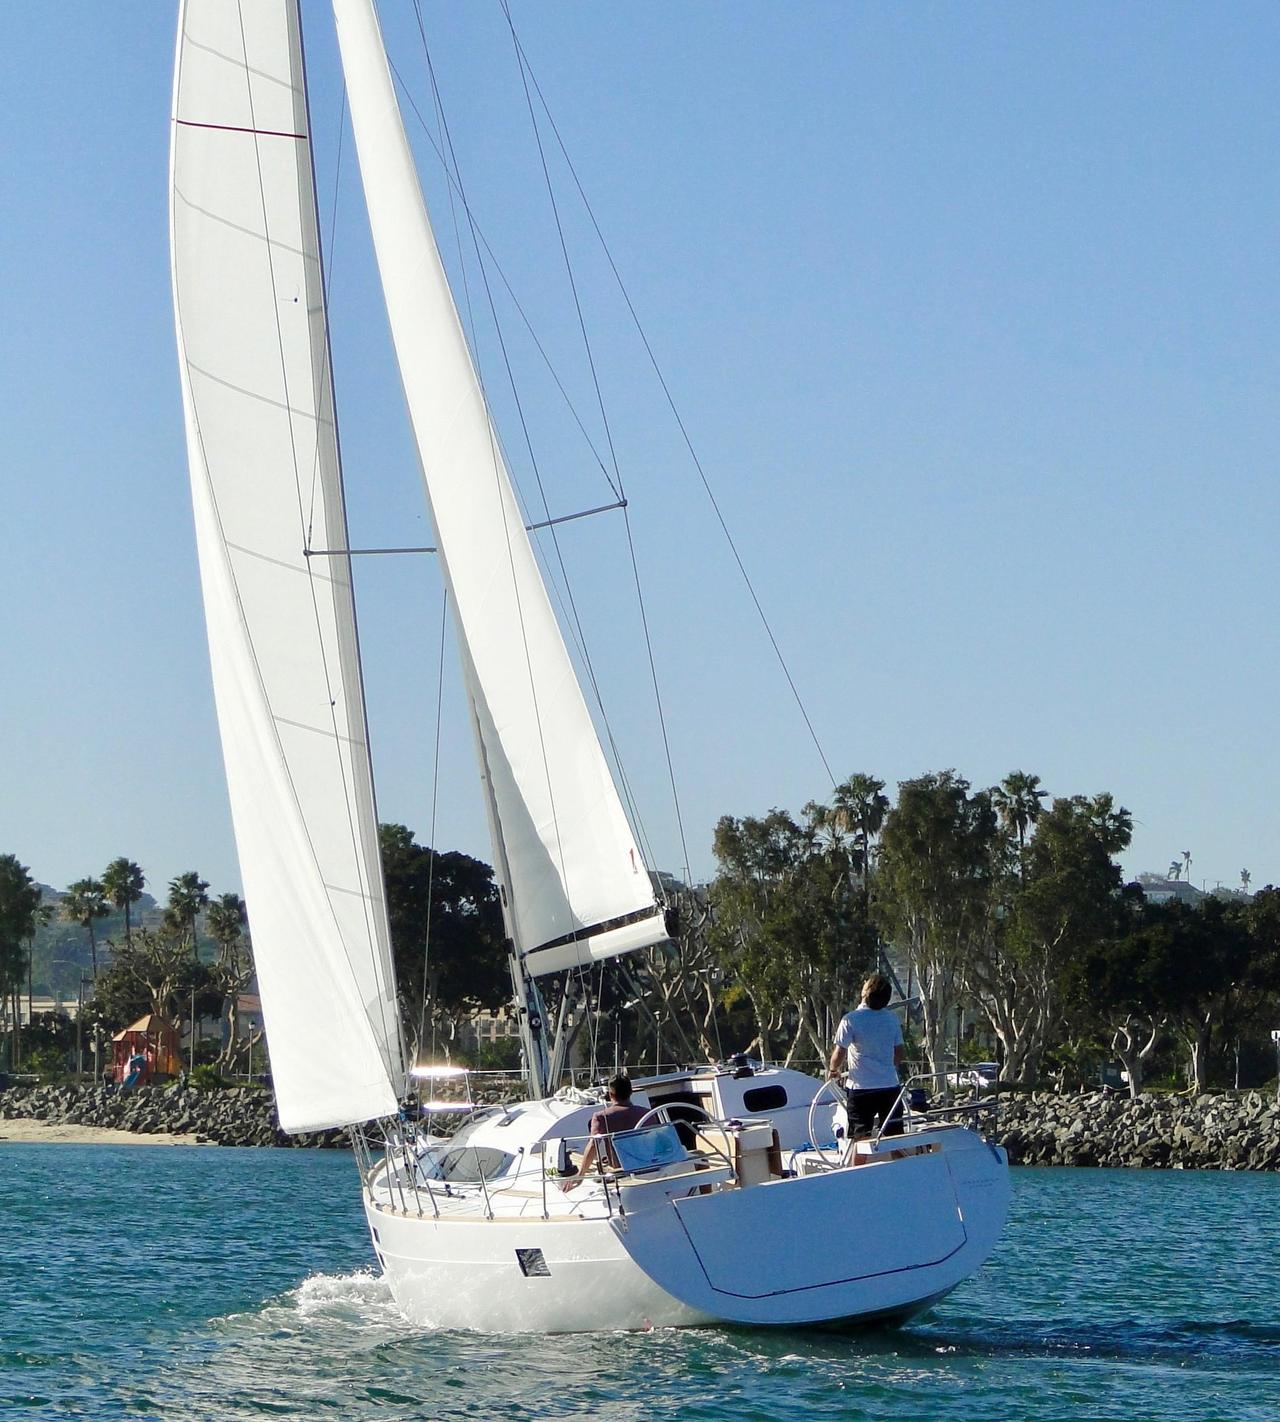 788bfdef26 2018 Used Elan Impression 45 Cruiser Sailboat For Sale - $358,000 ...